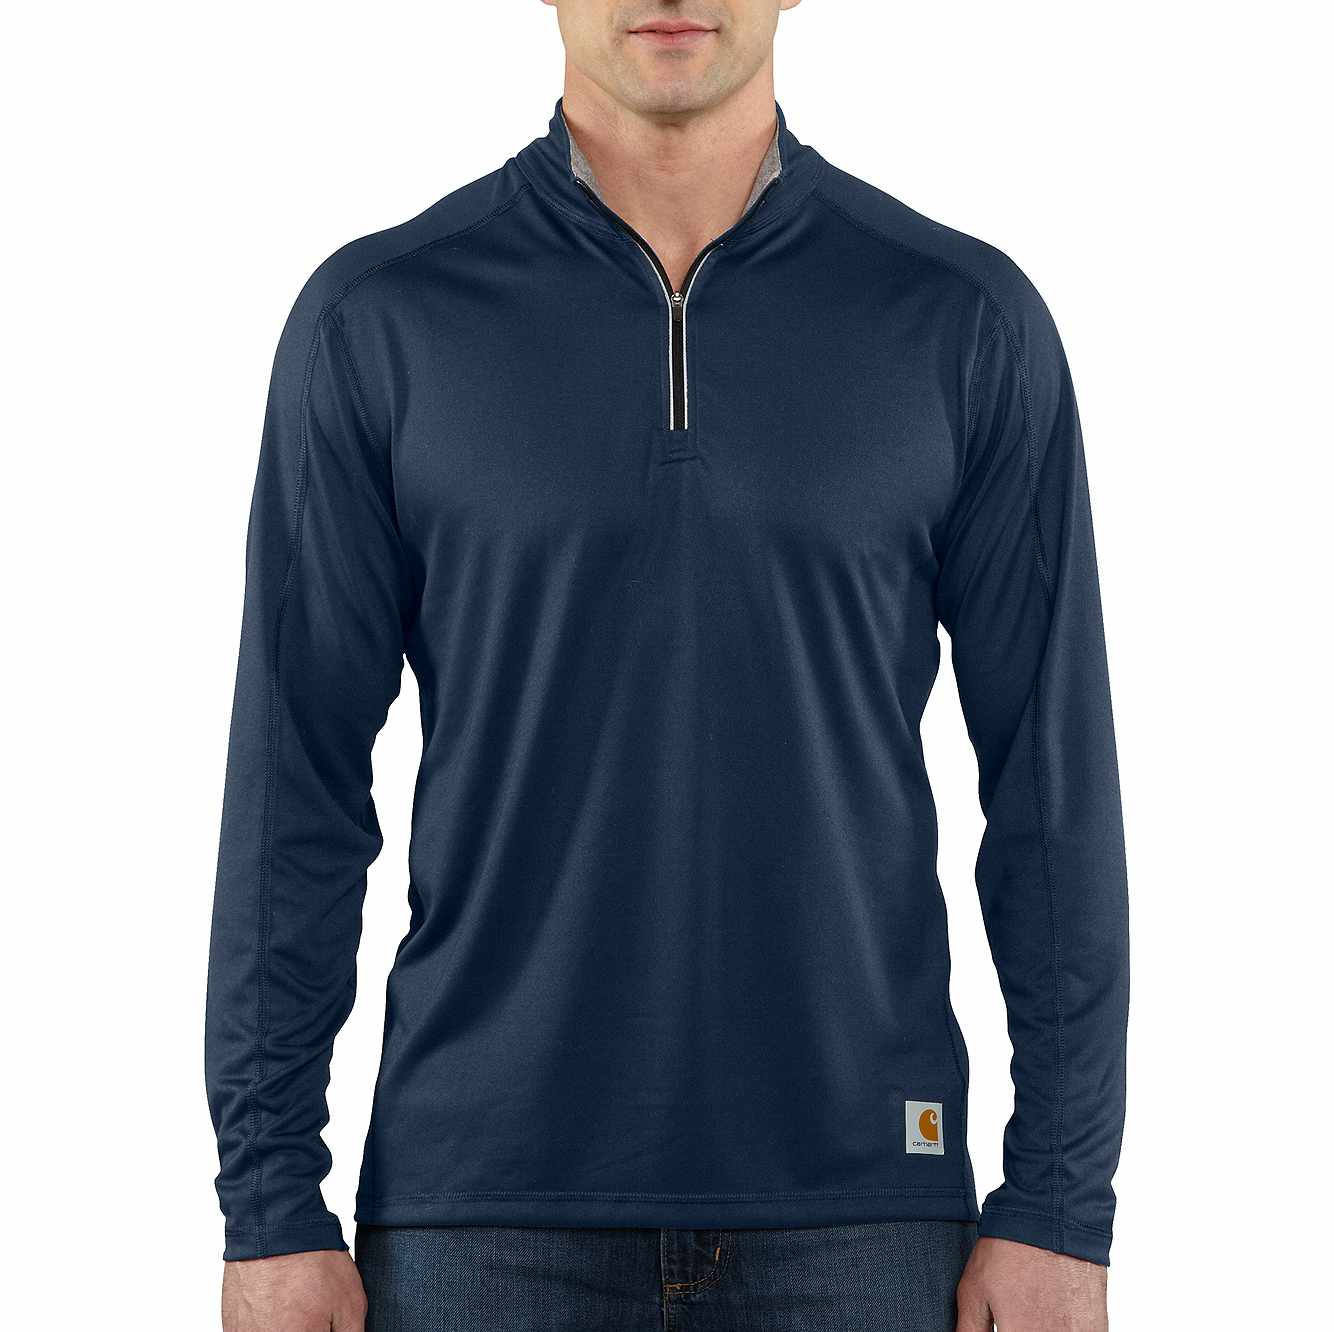 Picture of Carhartt Force® Long-Sleeve Quarter Zip T-Shirt in Navy